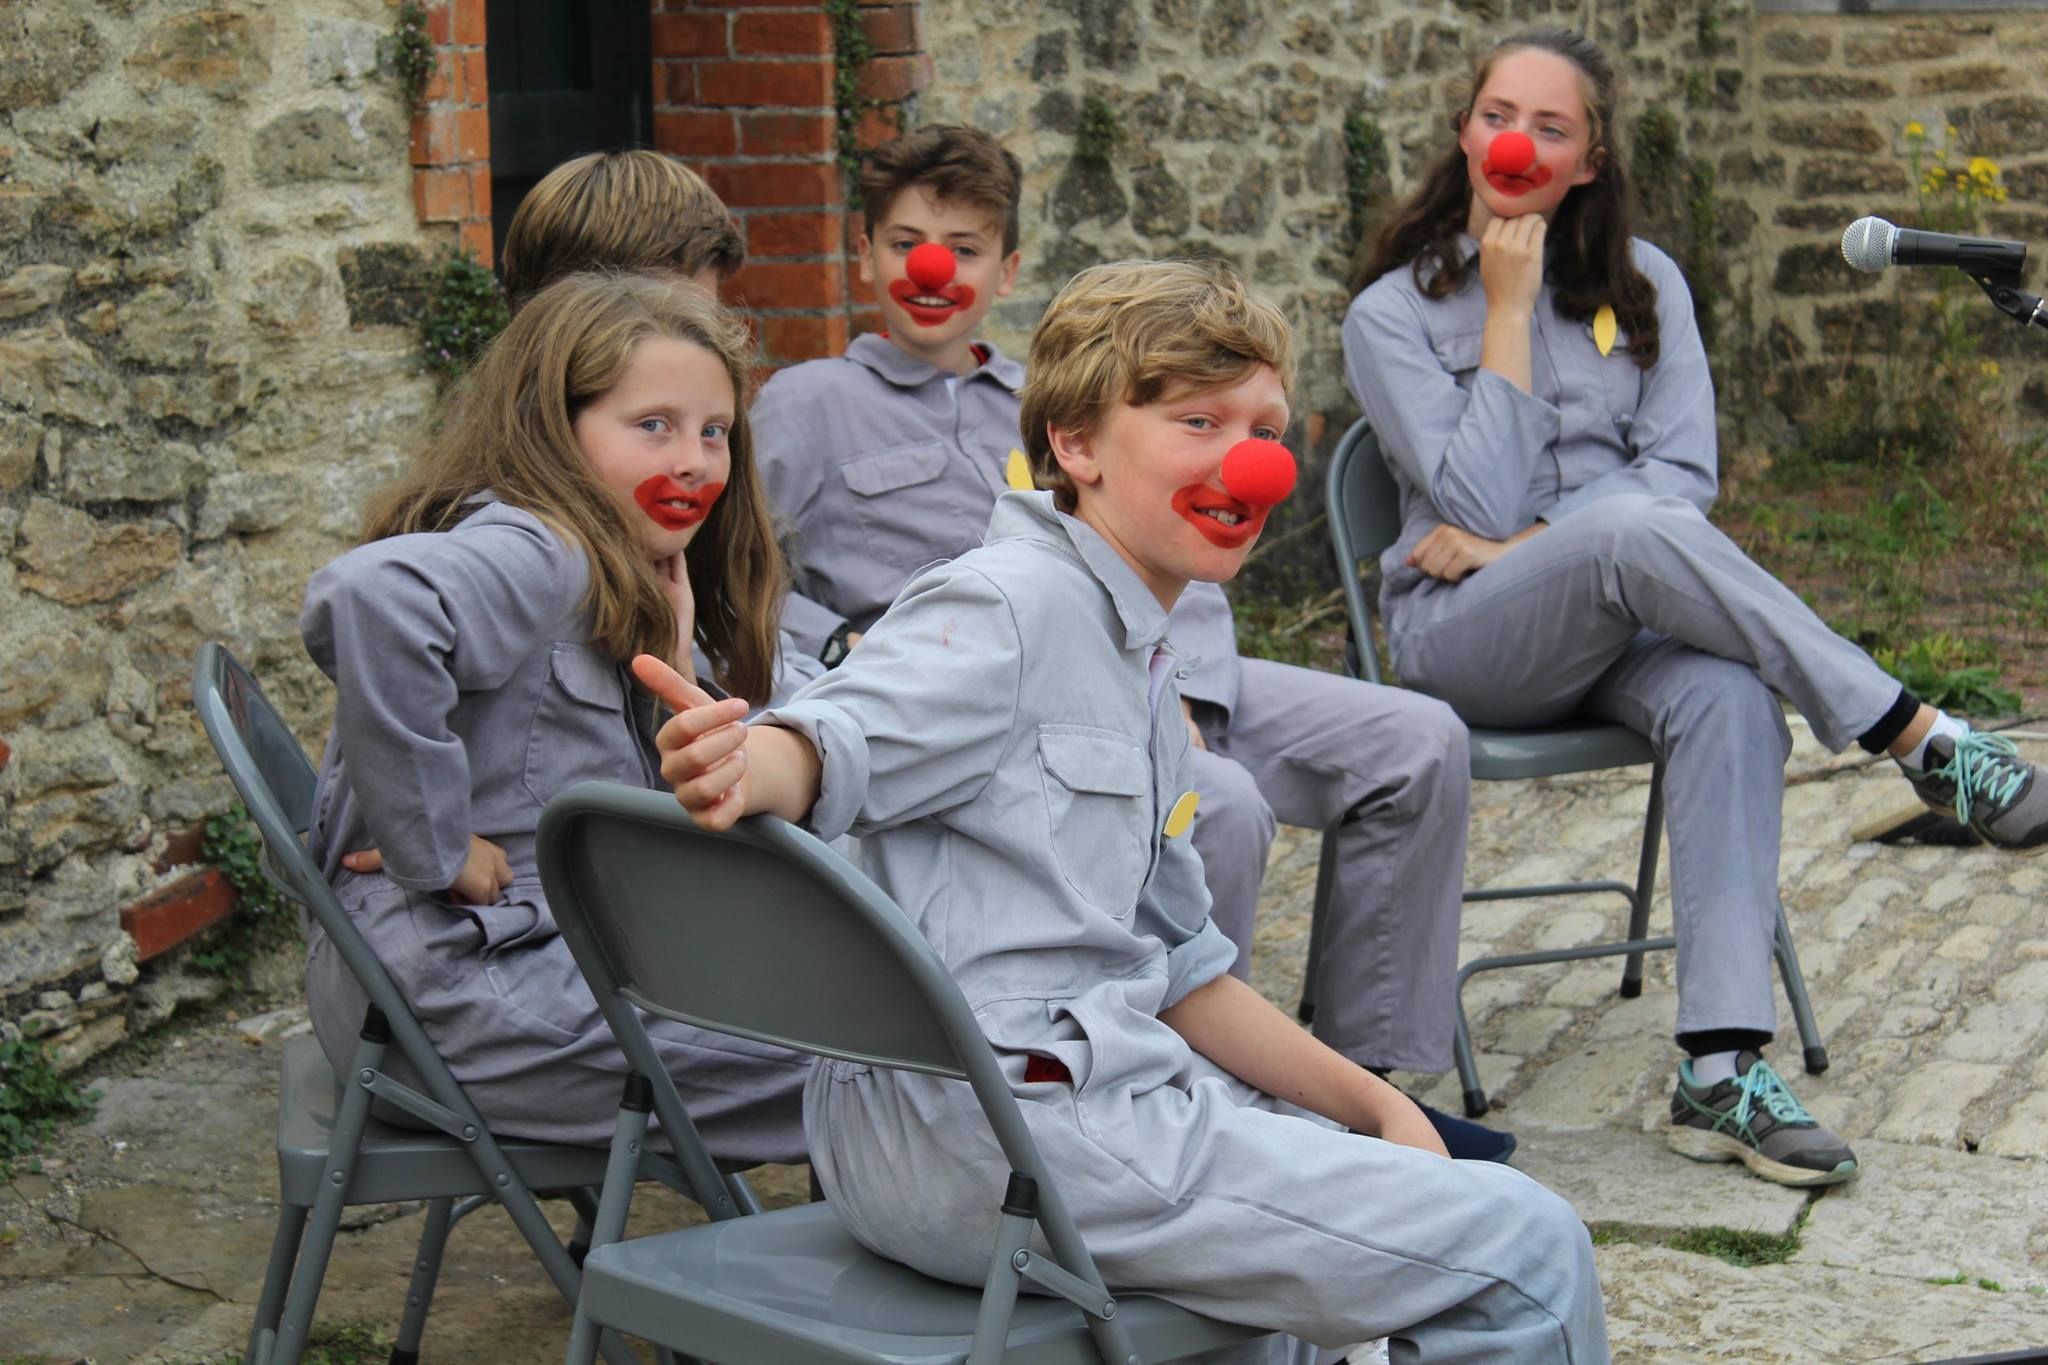 'We Are Strangers' A Performance Event at Hauser & Wirth Somerset